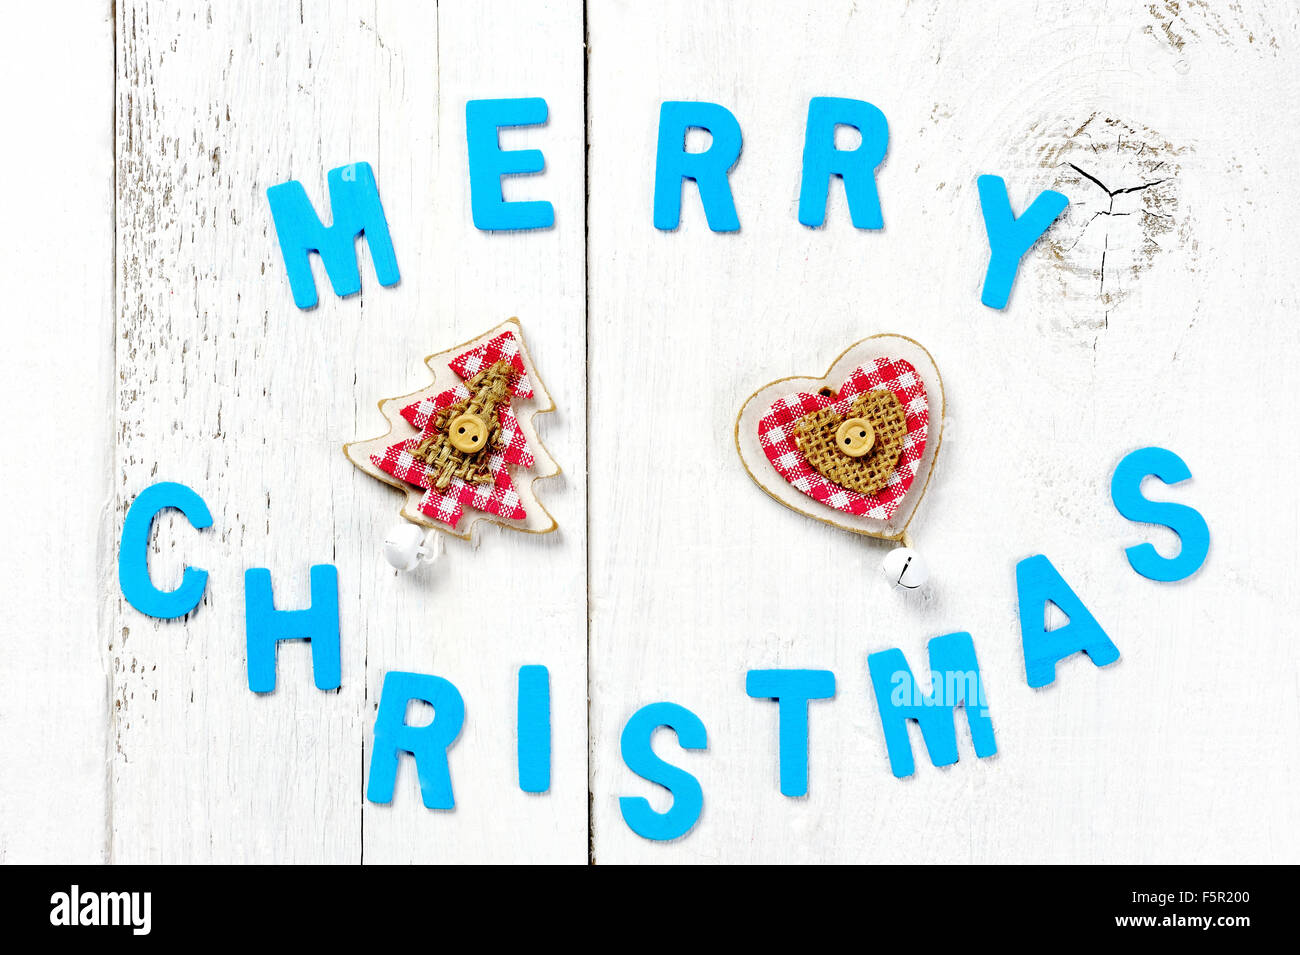 merry christmas words christmas tree and decoration on wooden background stock image - Merry Christmas Words